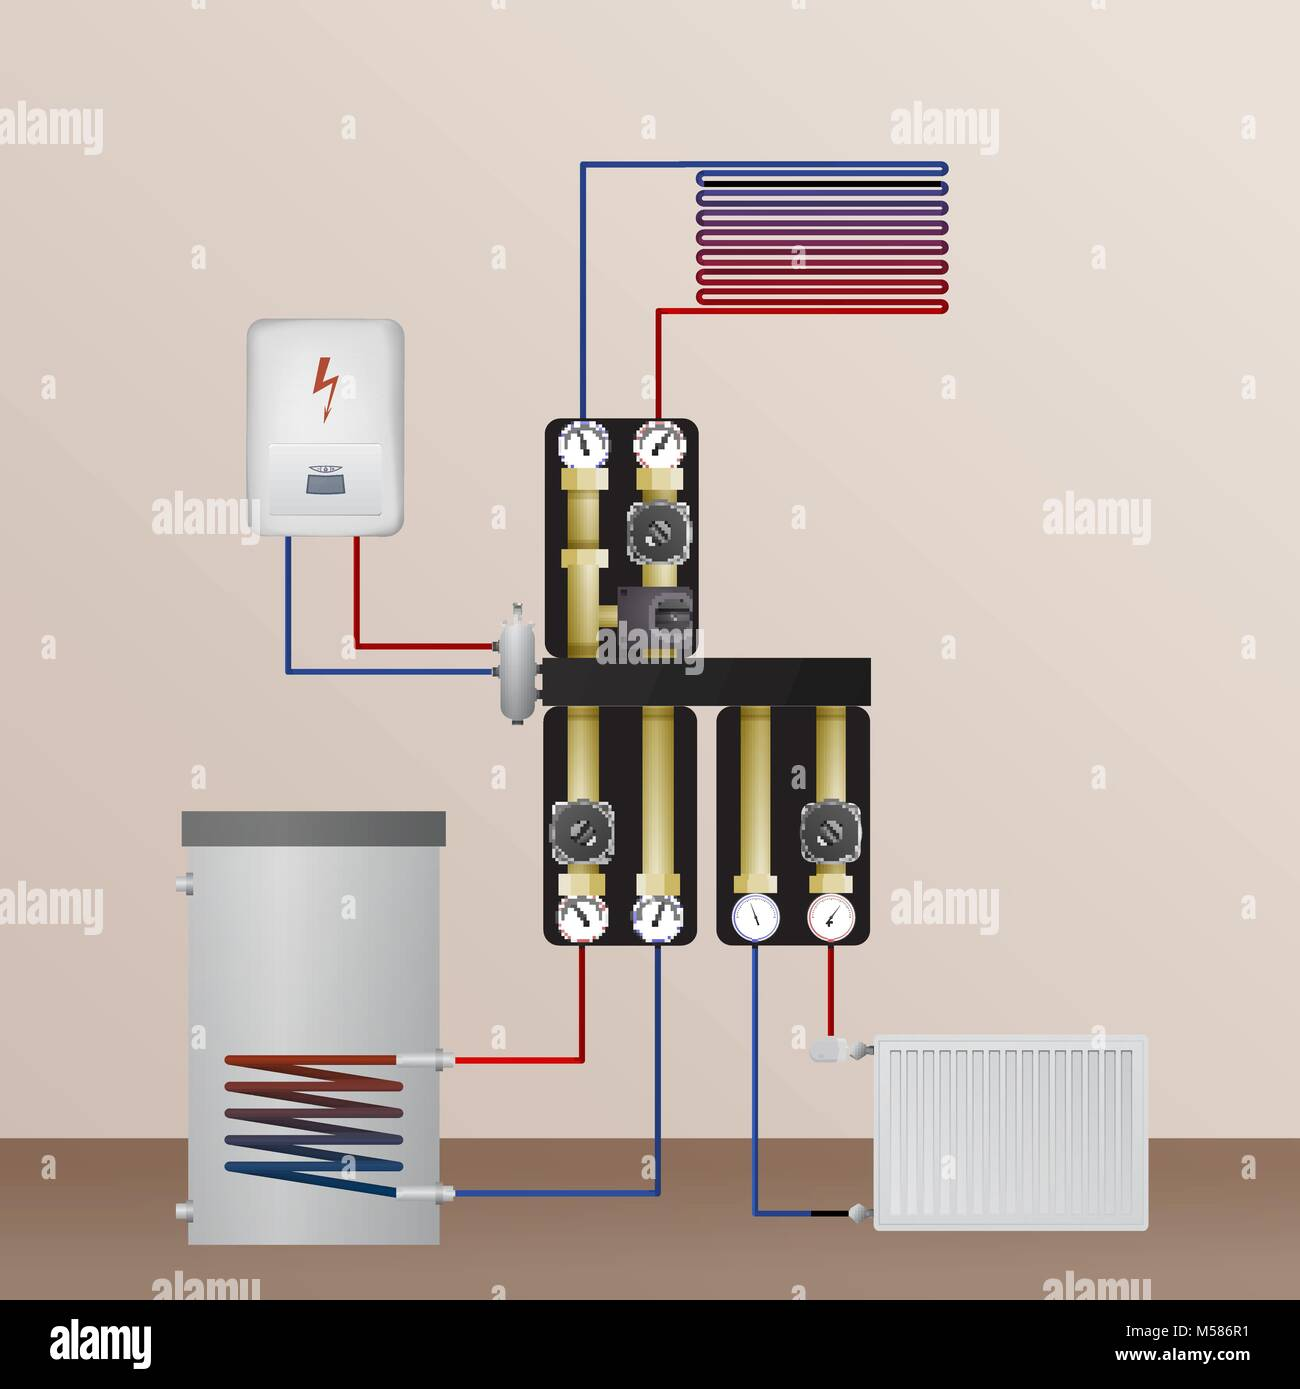 hight resolution of electrical boiler in the heating system vector illustration the hvac equipment hydraulic strapping underfloor heating radiator and water heating